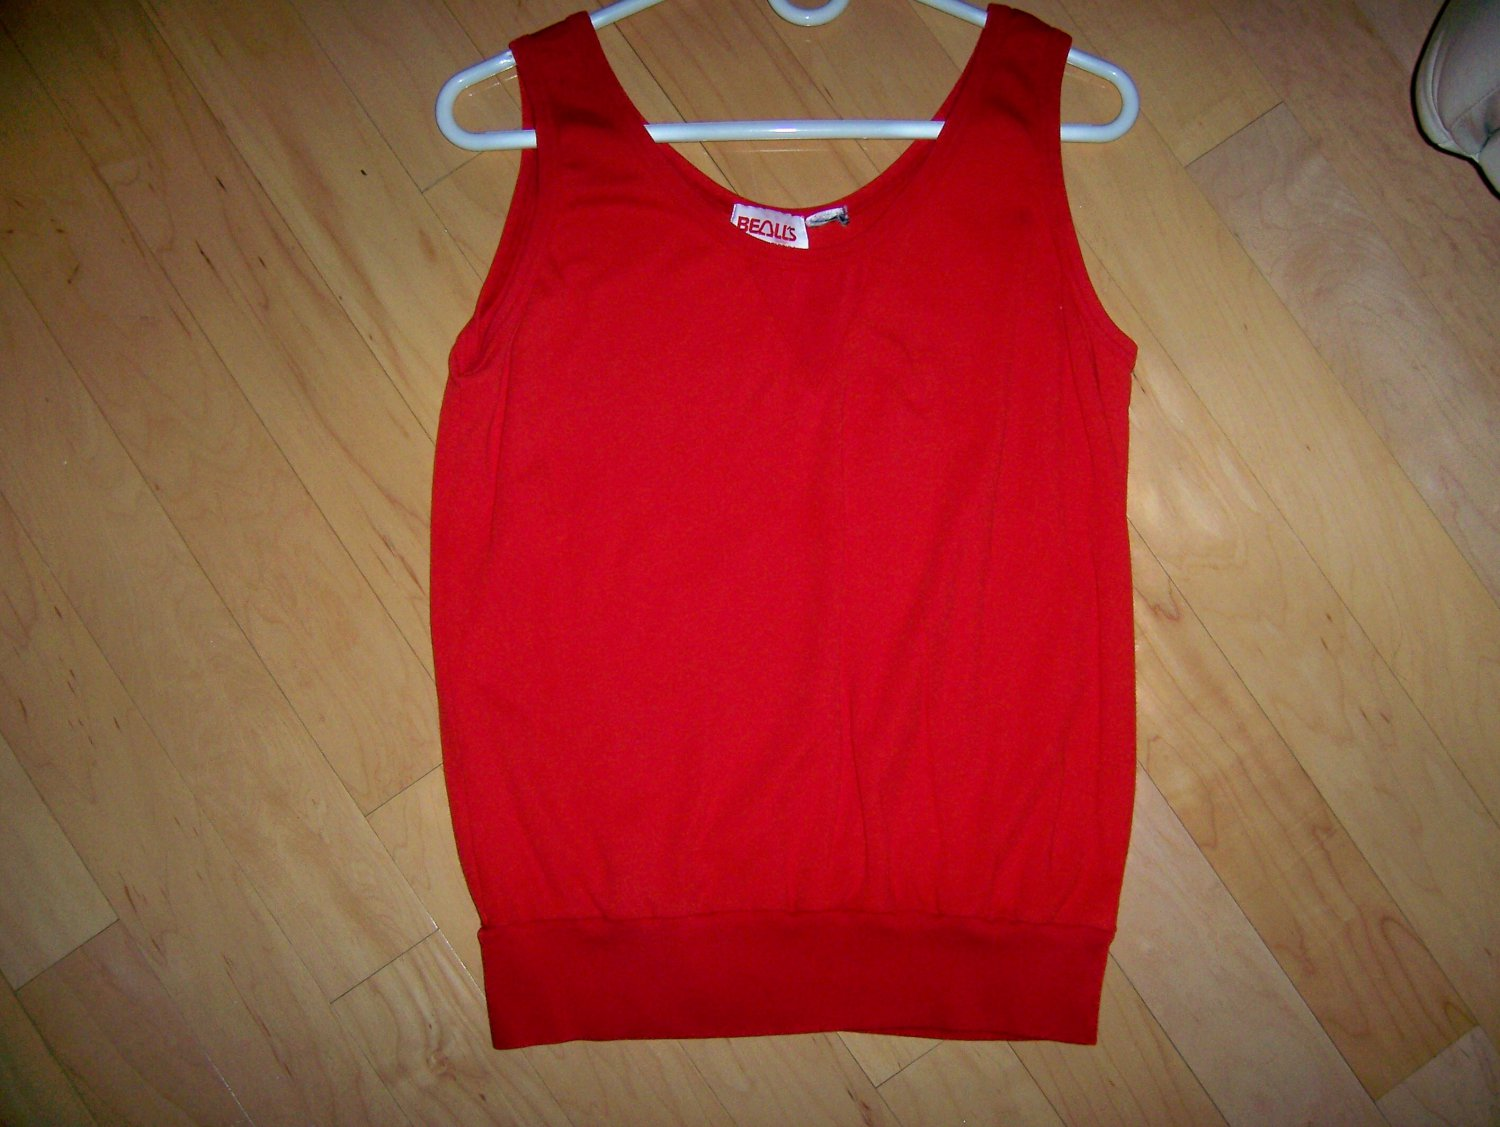 Ladies Tank Top Red By Bealls Size  10 BNK1622